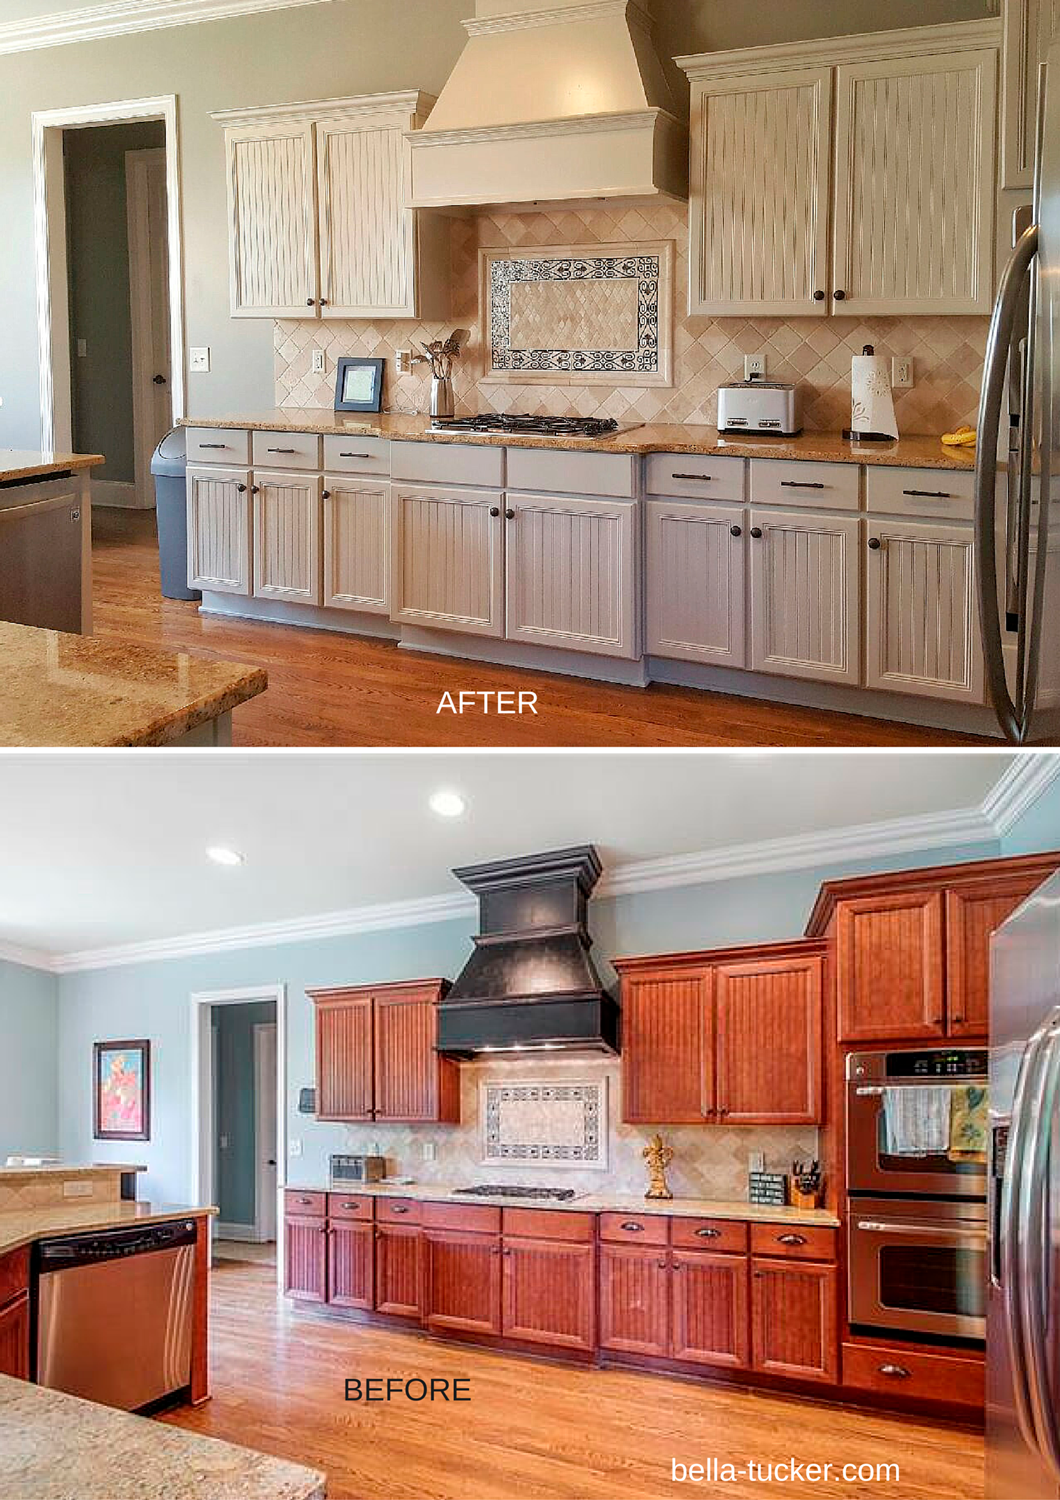 Design In Wood What To Do With Oak Cabinets: Painted Cabinets Nashville TN Before And After Photos